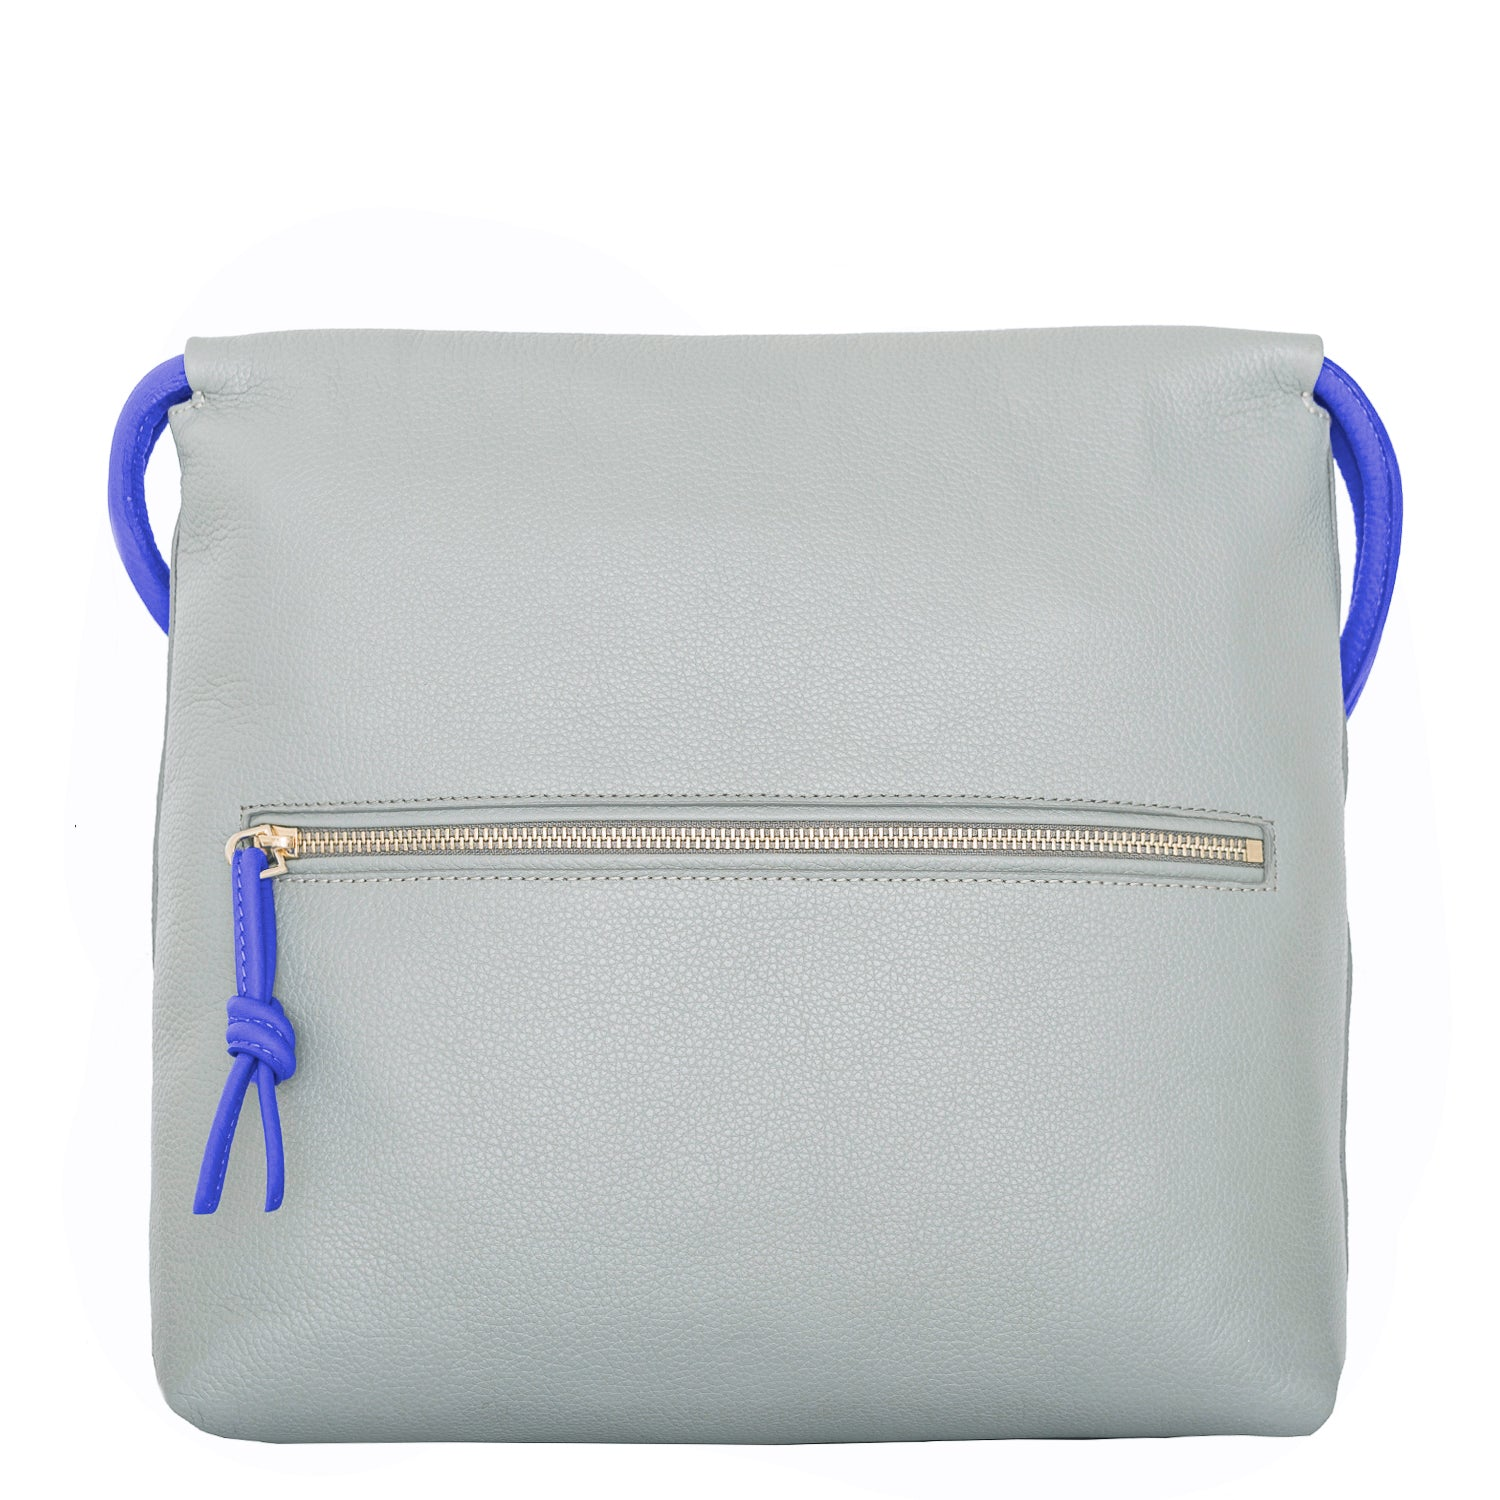 A convertible leather blue and grey shoulder bag for women with a knot detail on the strap that could be used as a clutch bag with its roll down feature, back image.